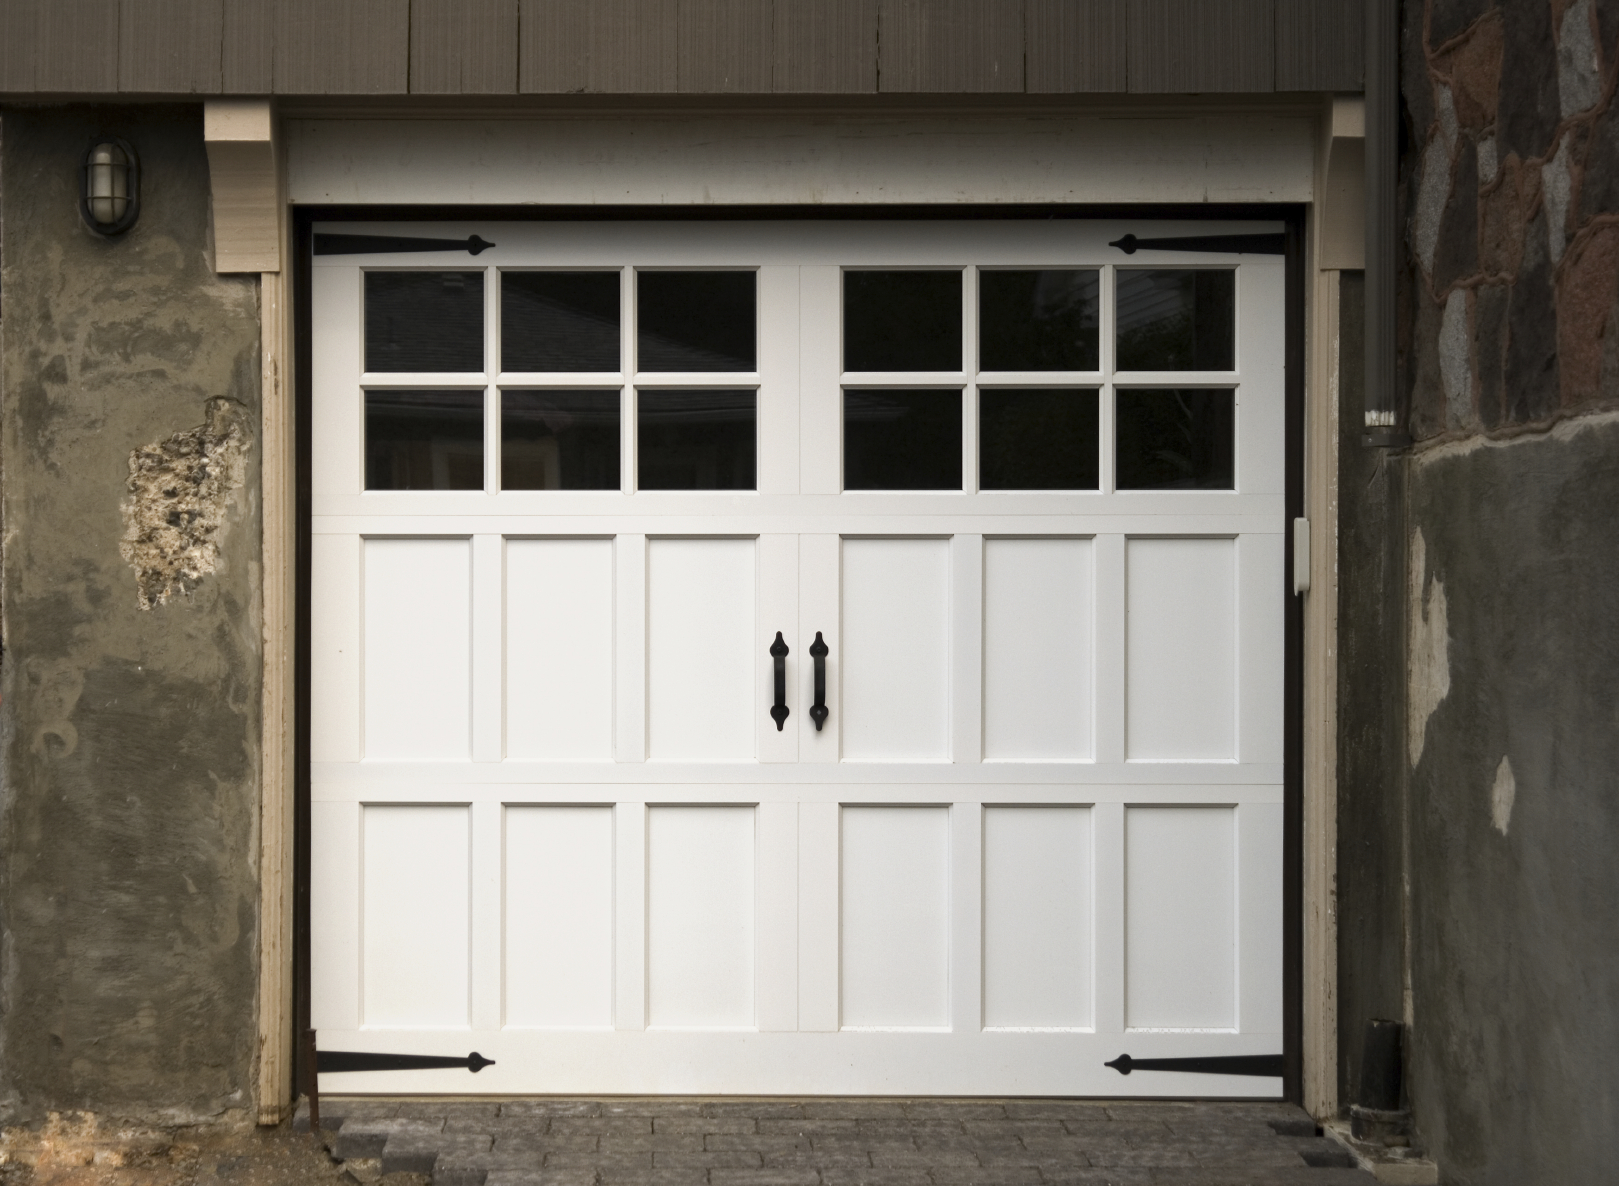 1186 #7D6A4E Carriage Style Garage Doors Carroll Garage Doors wallpaper Doors And Garage Doors 37151619